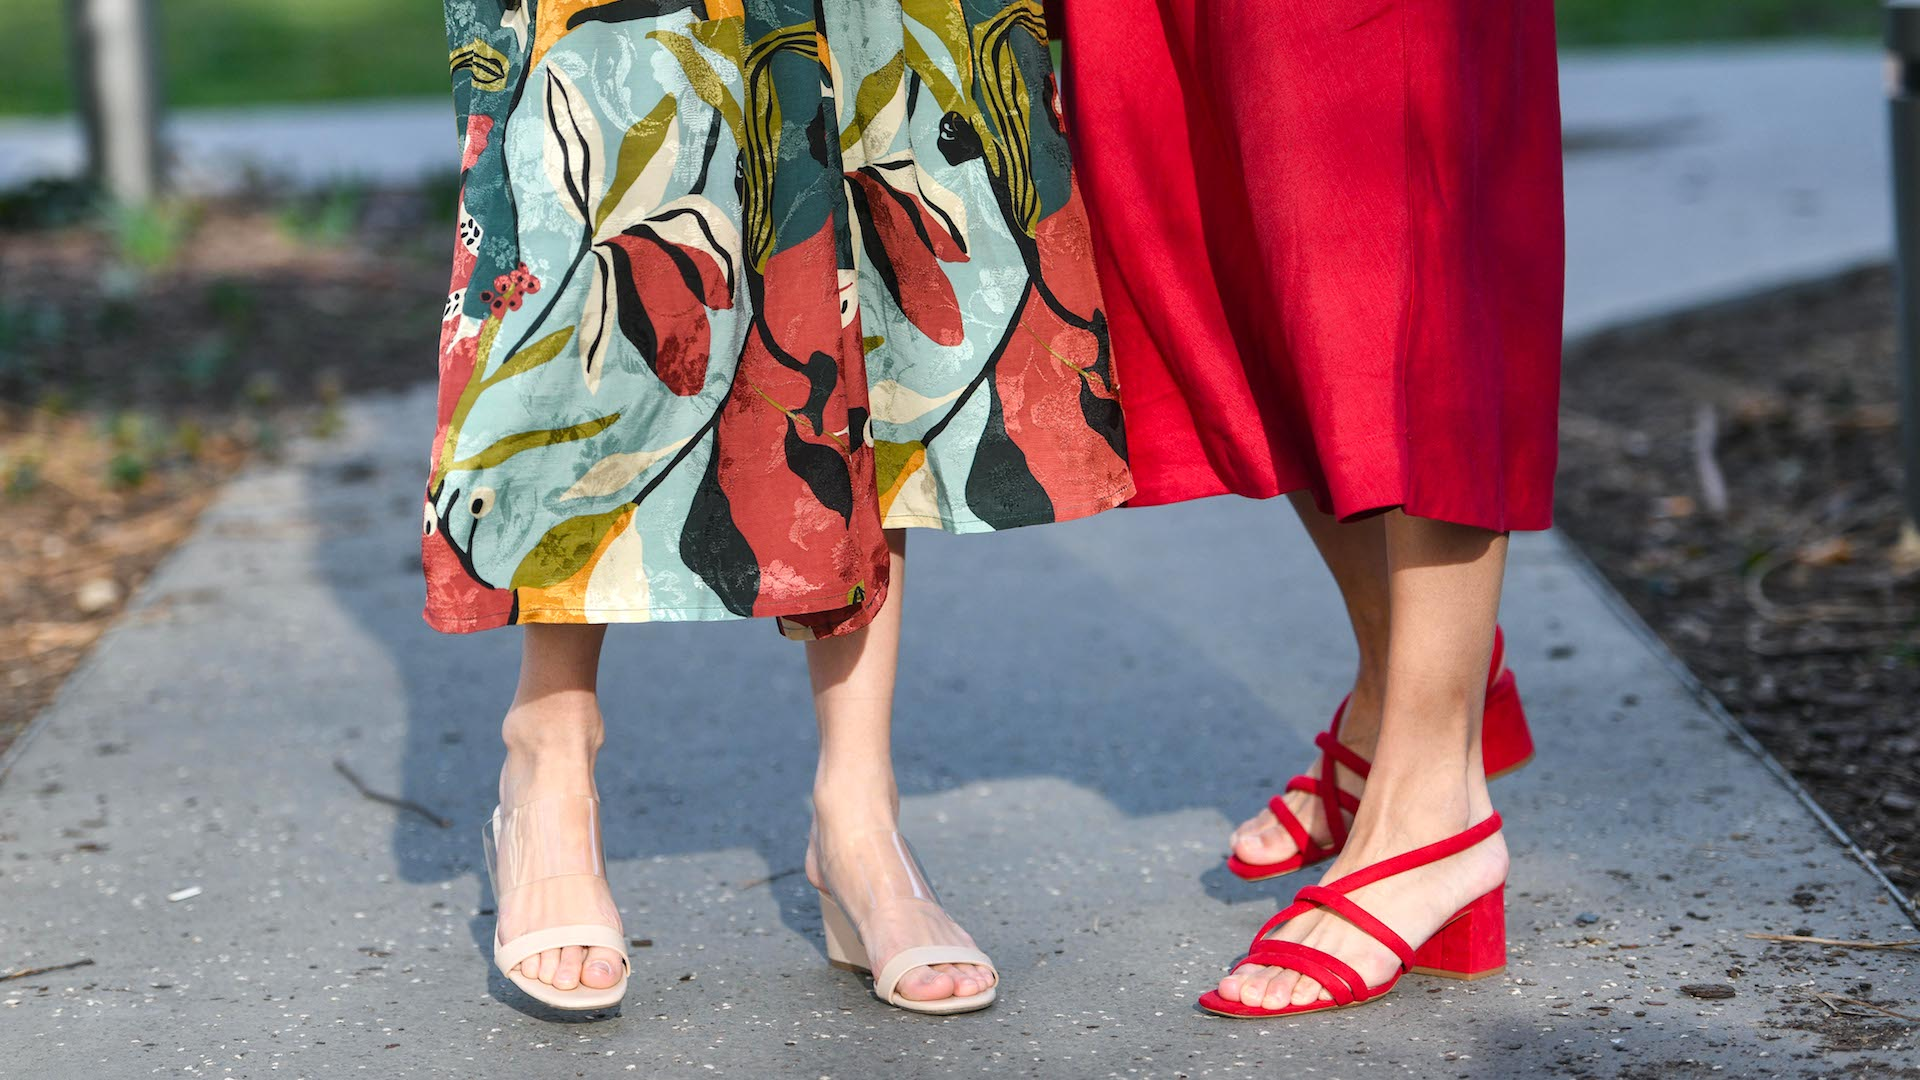 Sandal Trends 2020: All the Styles To